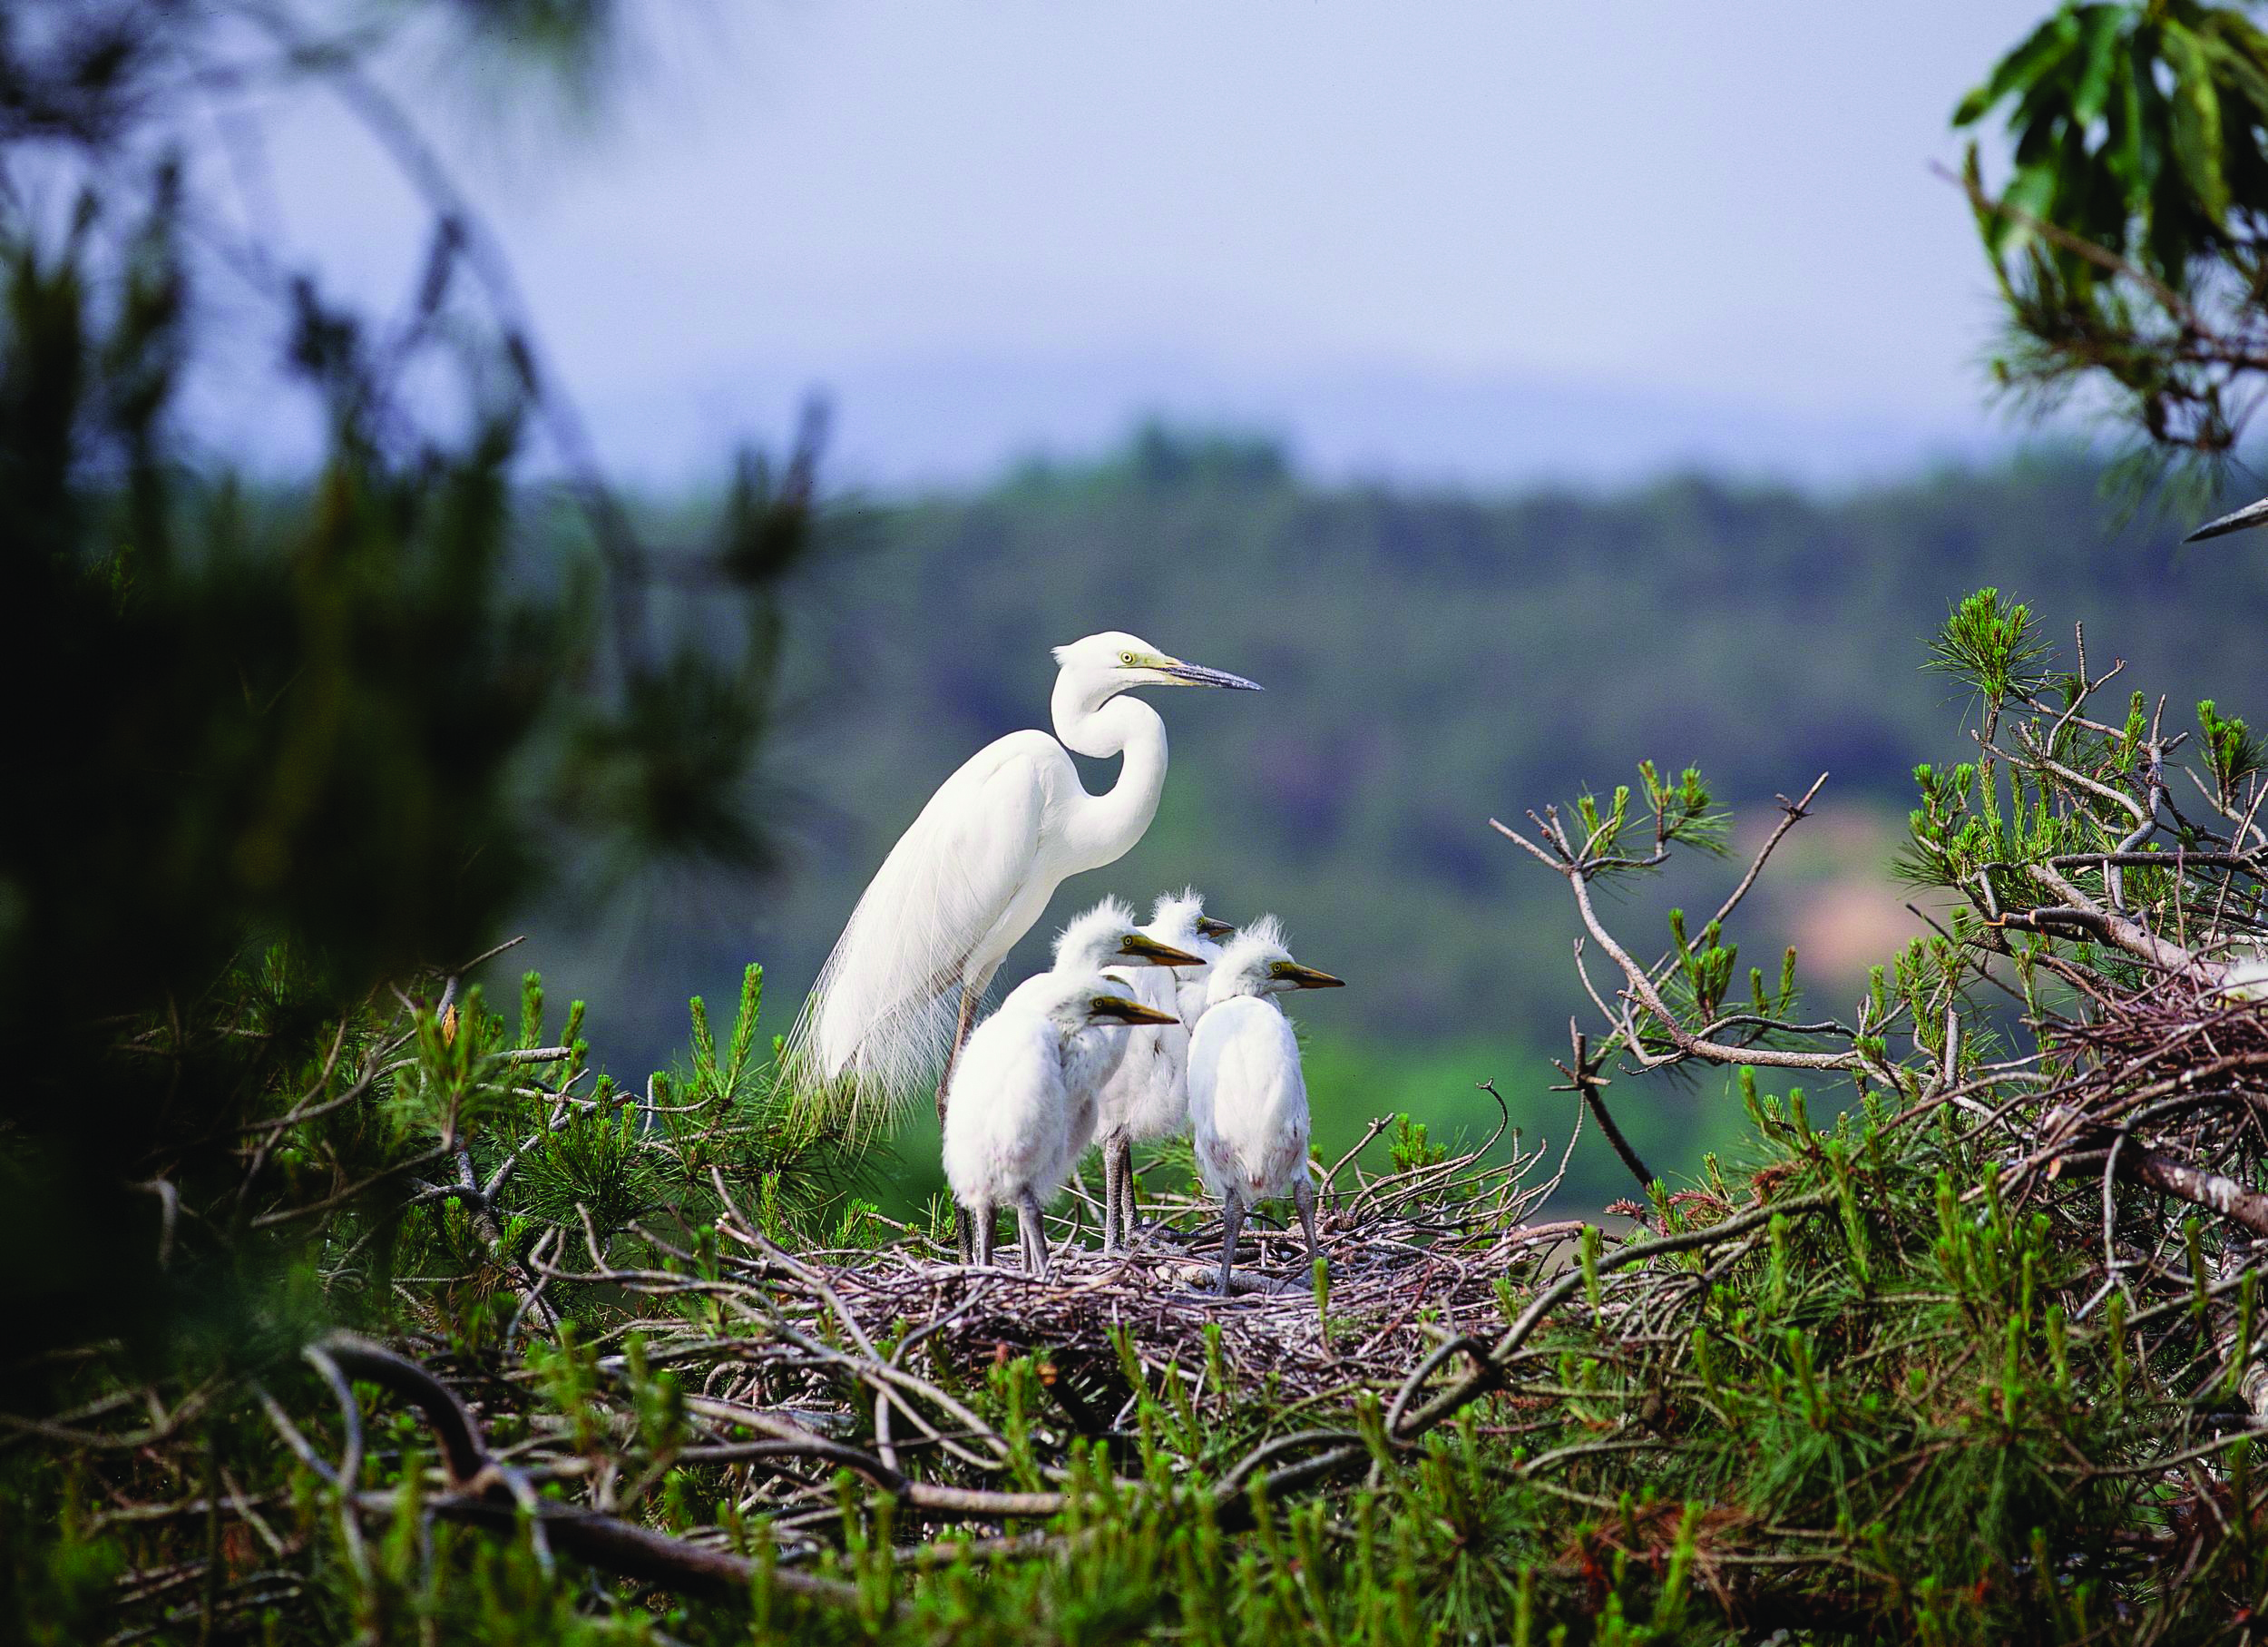 A mother heron with her babies